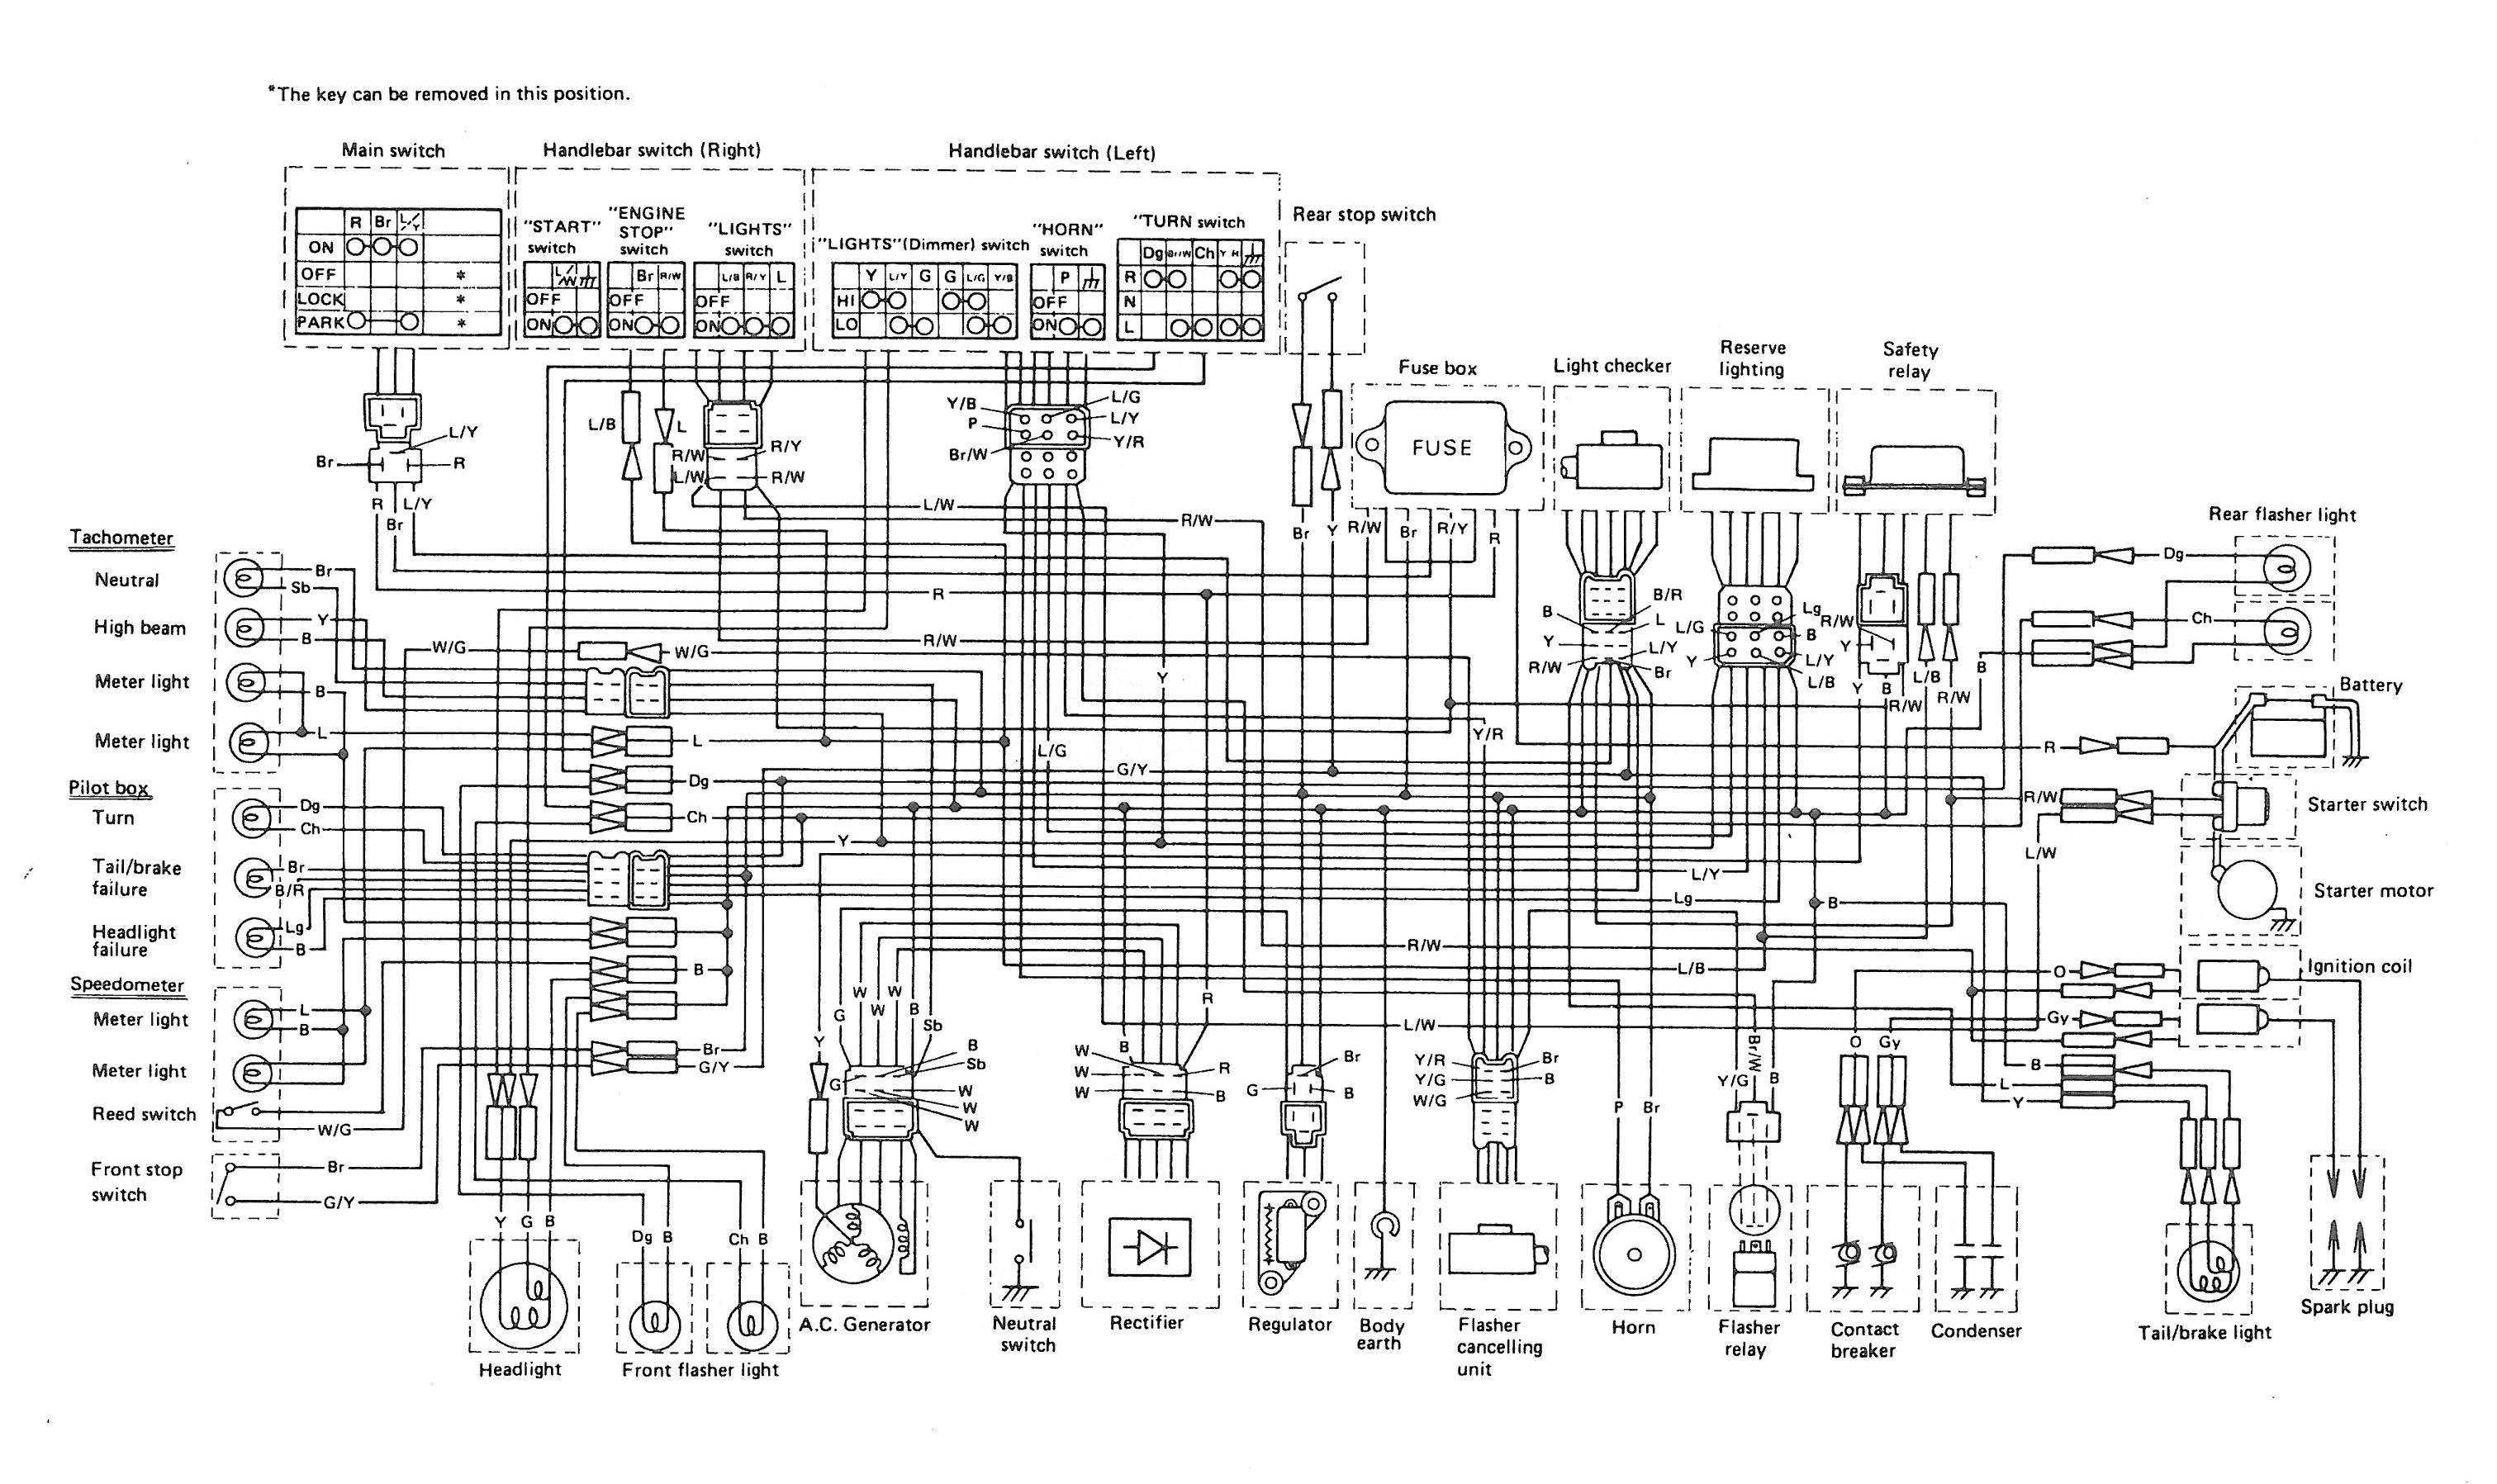 78 xsse wiring 6 1 1978 thexscafe yamaha xs 400 wiring diagram at gsmx.co